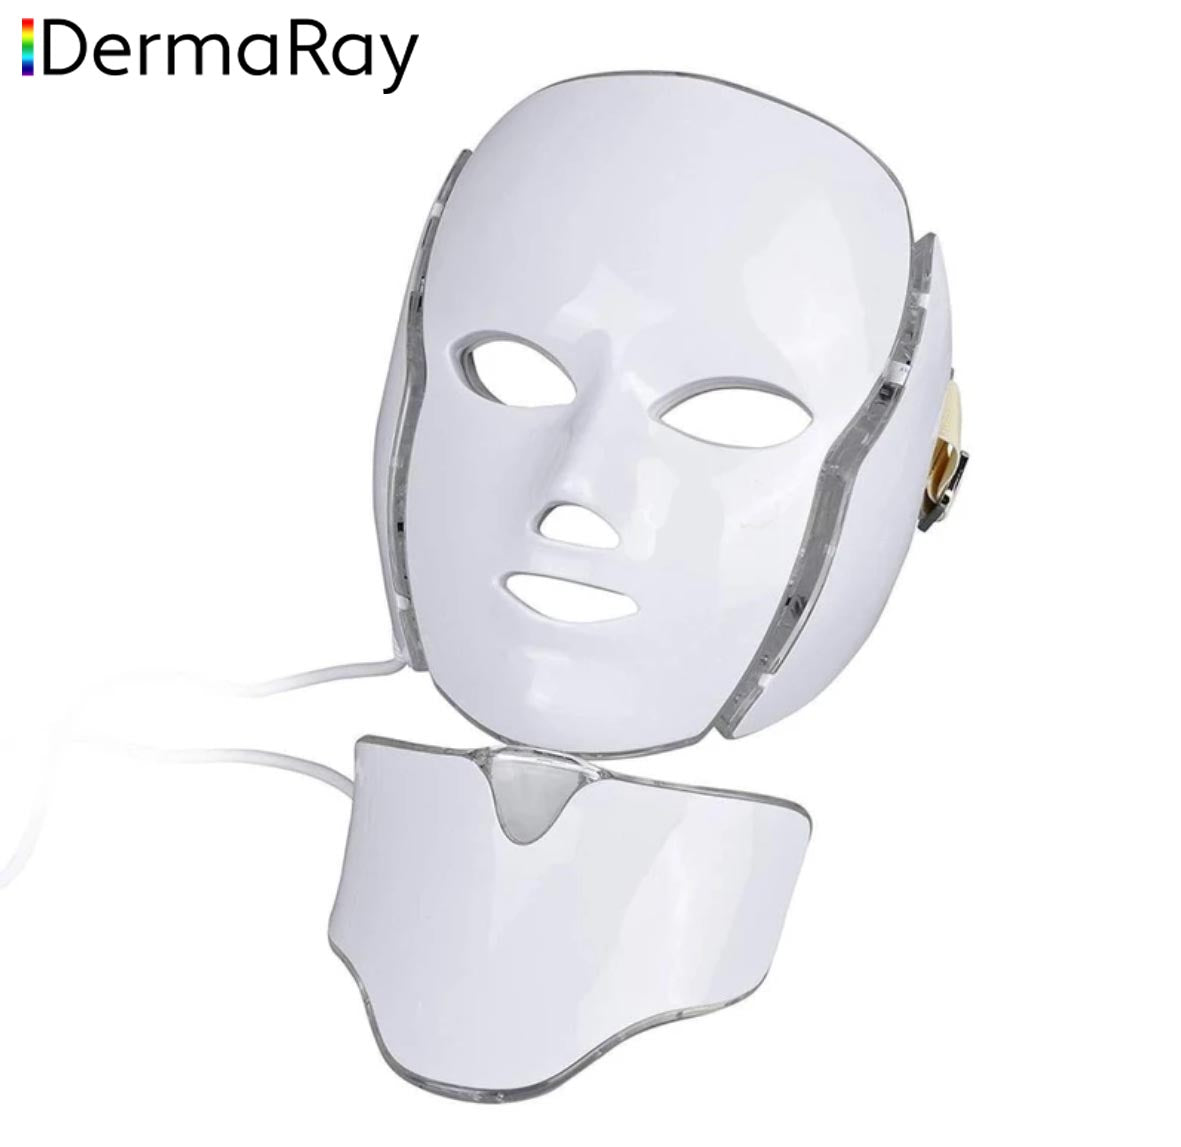 Dermaray Professional Led Light Therapy Mask